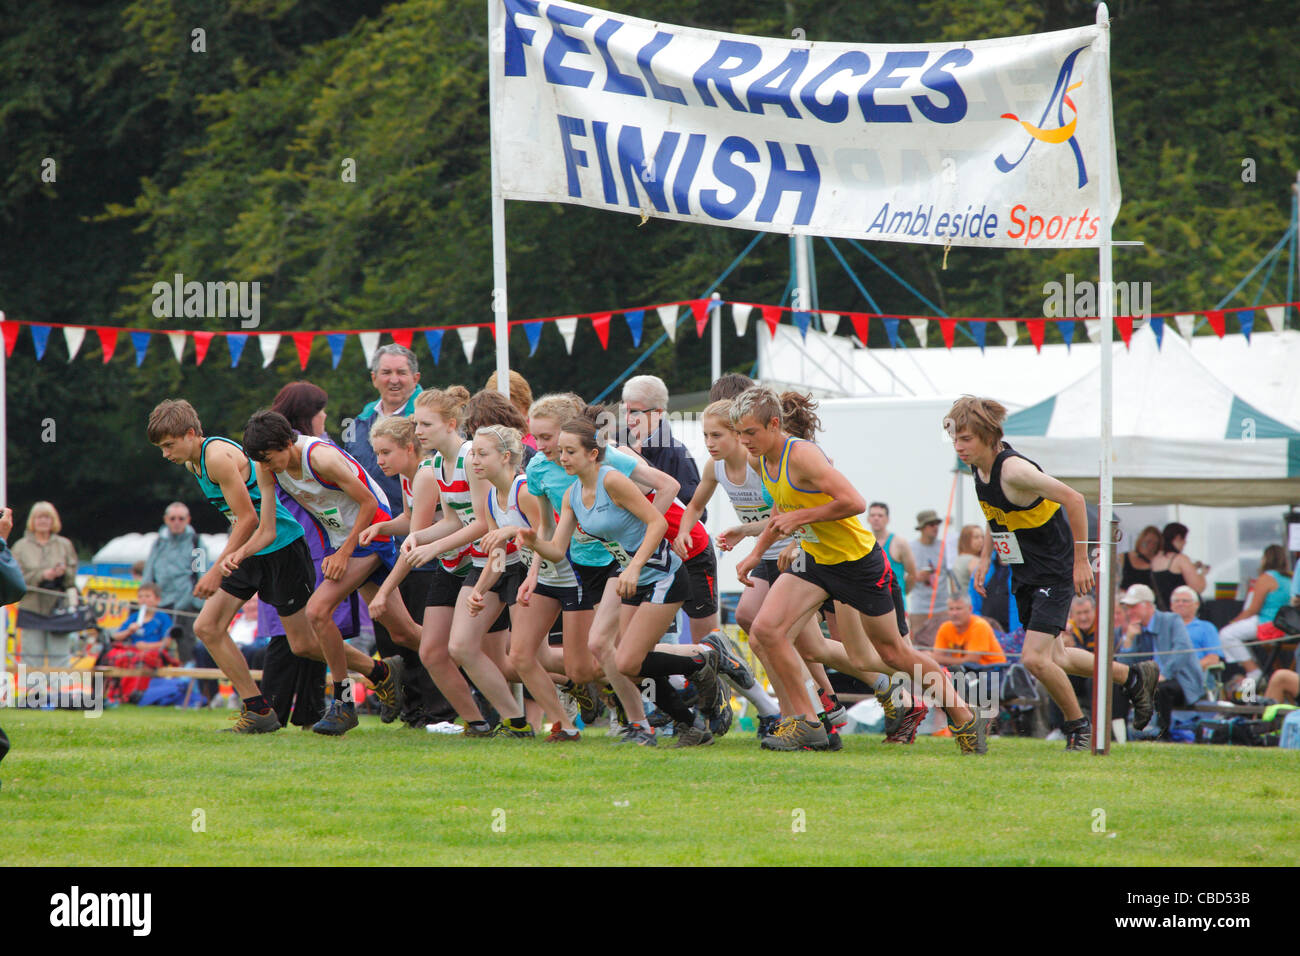 Fell Race Start 2011 at Ambleside Sports, The Lake District, Cumbria, England, UK - Stock Image